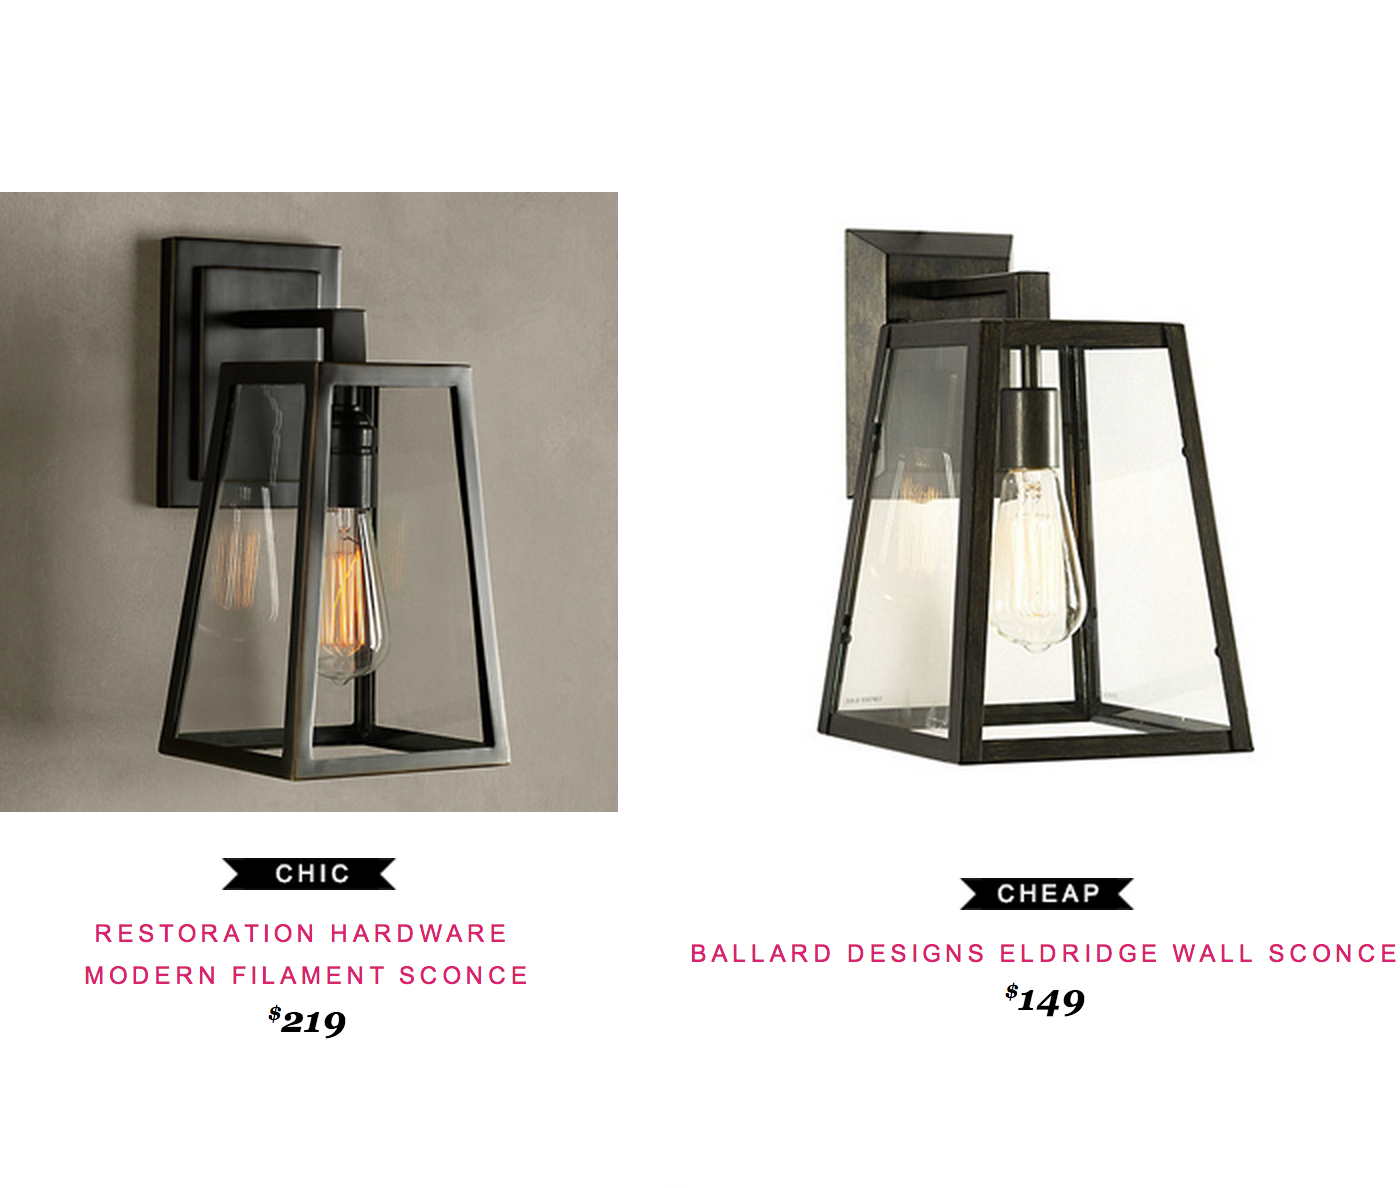 Restoration hardware modern filament sconce 219 vs ballard restoration hardware modern filament sconce 219 vs ballard designs eldridge wall sconce 149 cottage lightingdining lightingoutdoor aloadofball Images